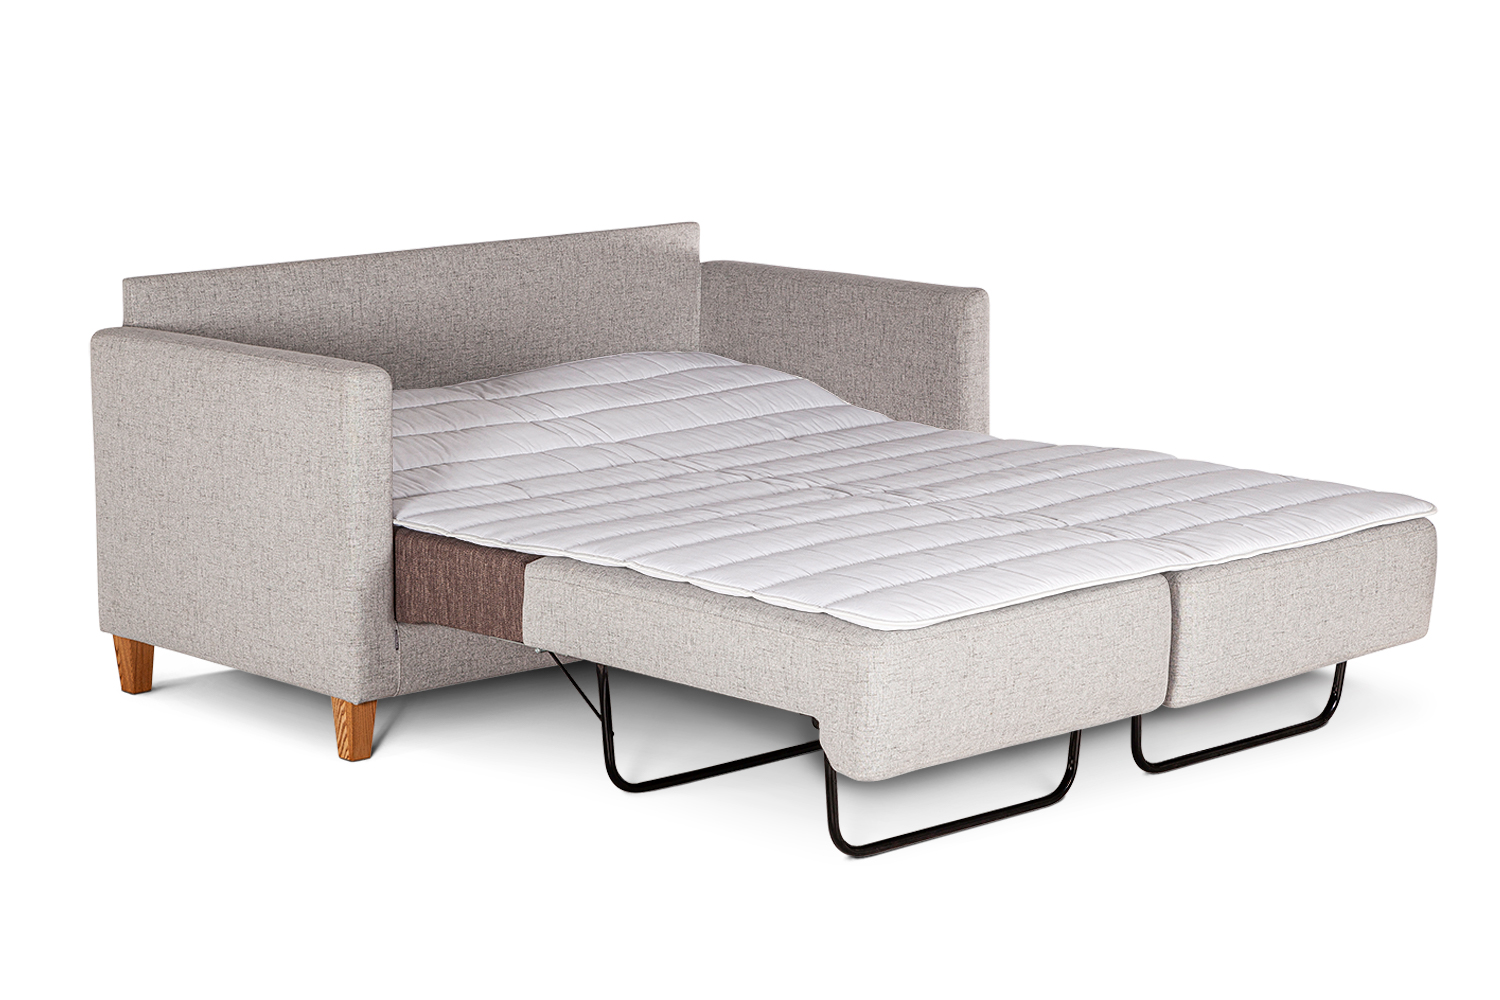 In picture: Nicole 2 opened into bed position. Fabric: Linea 16. Leg: 1, oak.